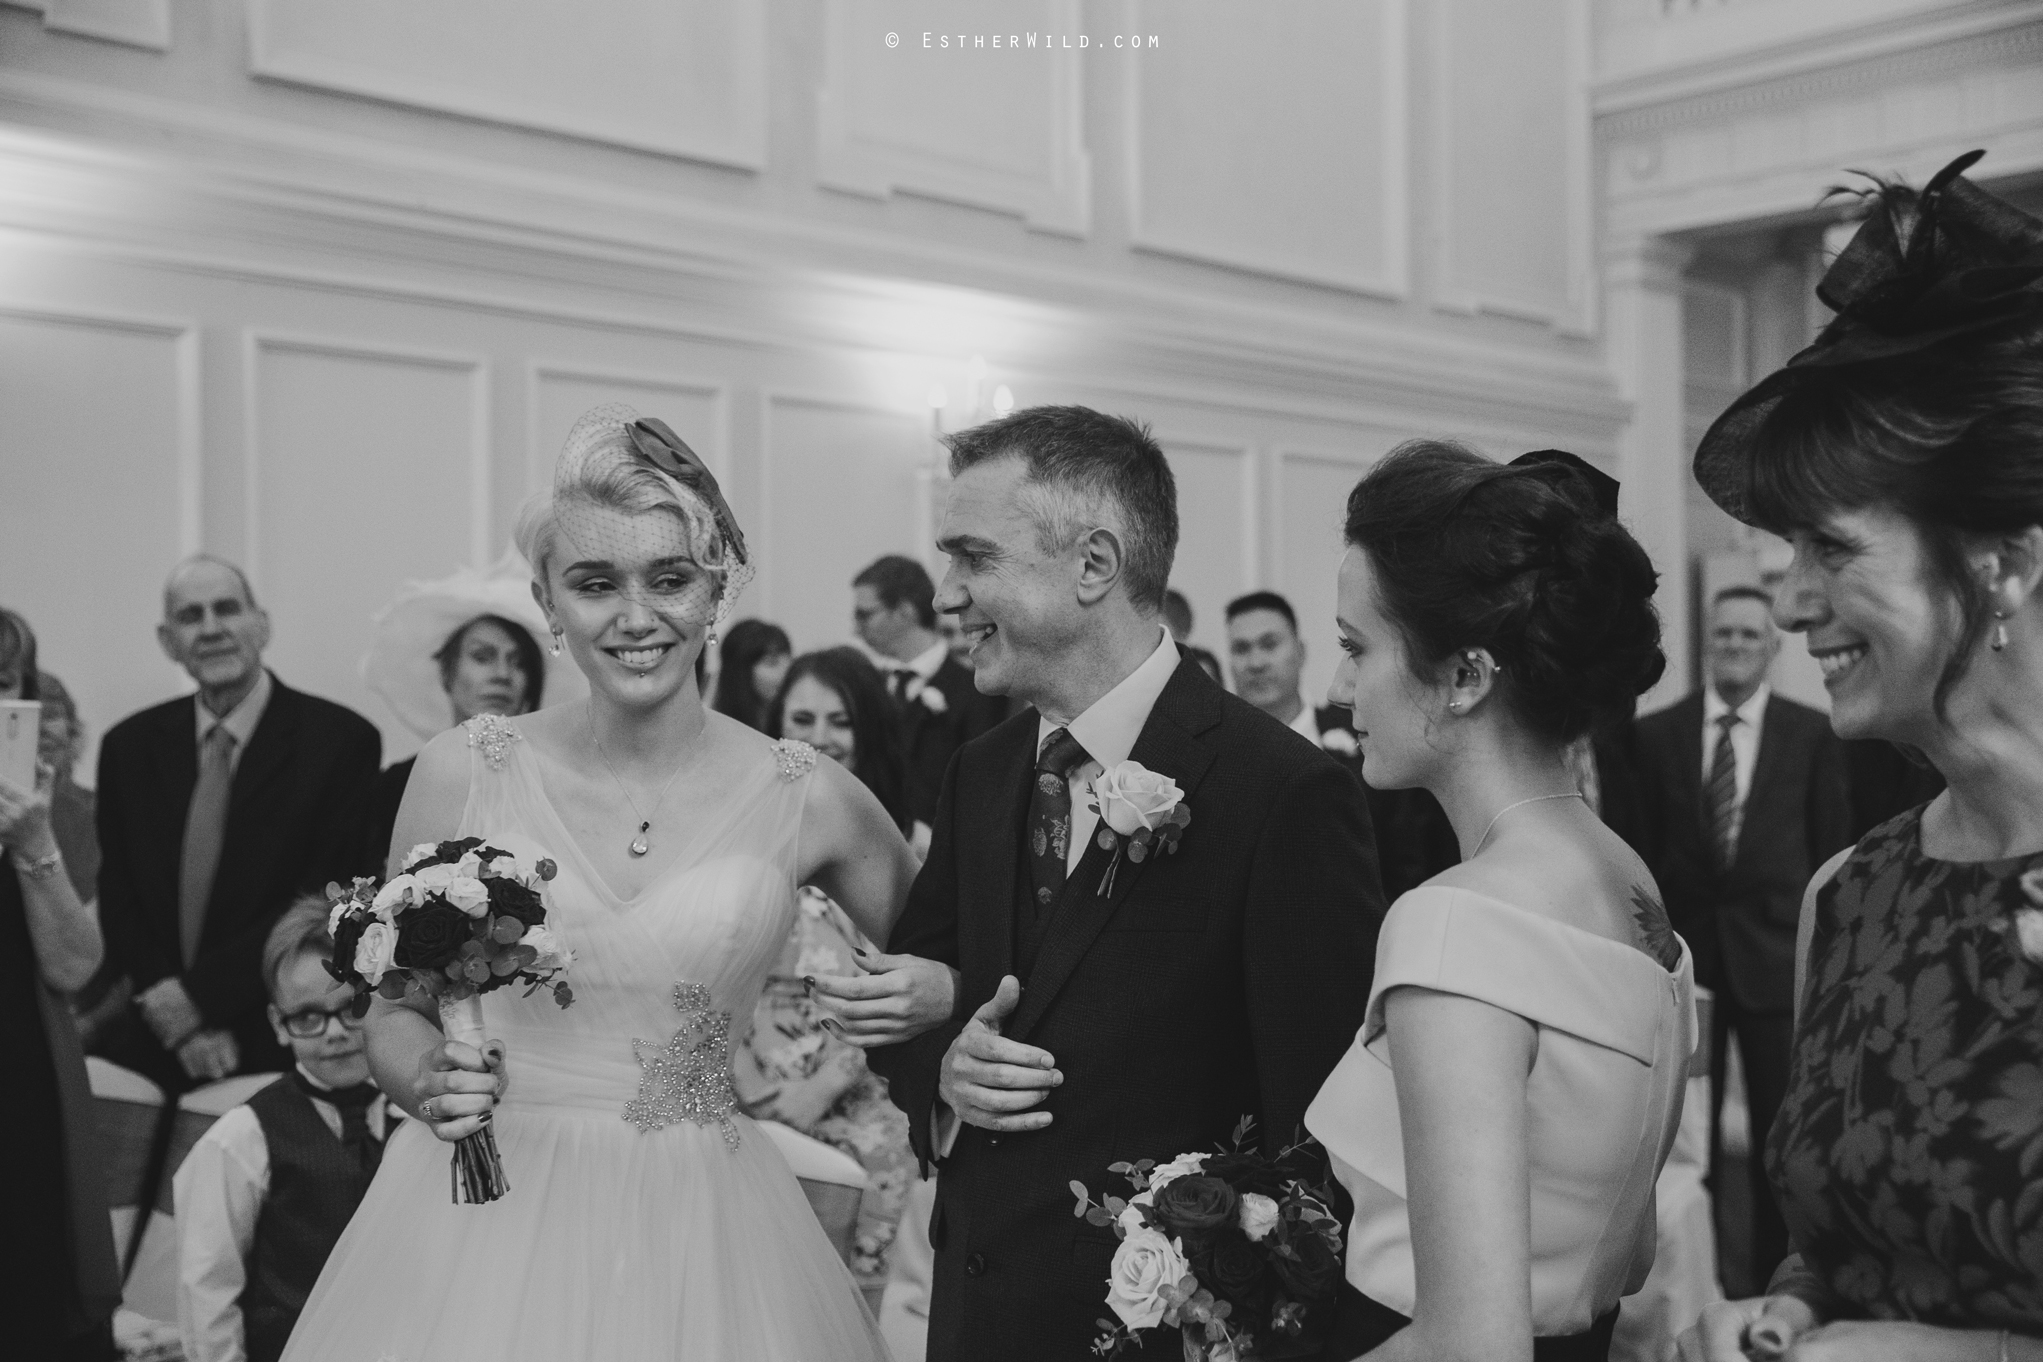 0717_Norwich_Assembly_House_Wedding_Esther_Wild_Photographer_IMG_3859-1.jpg